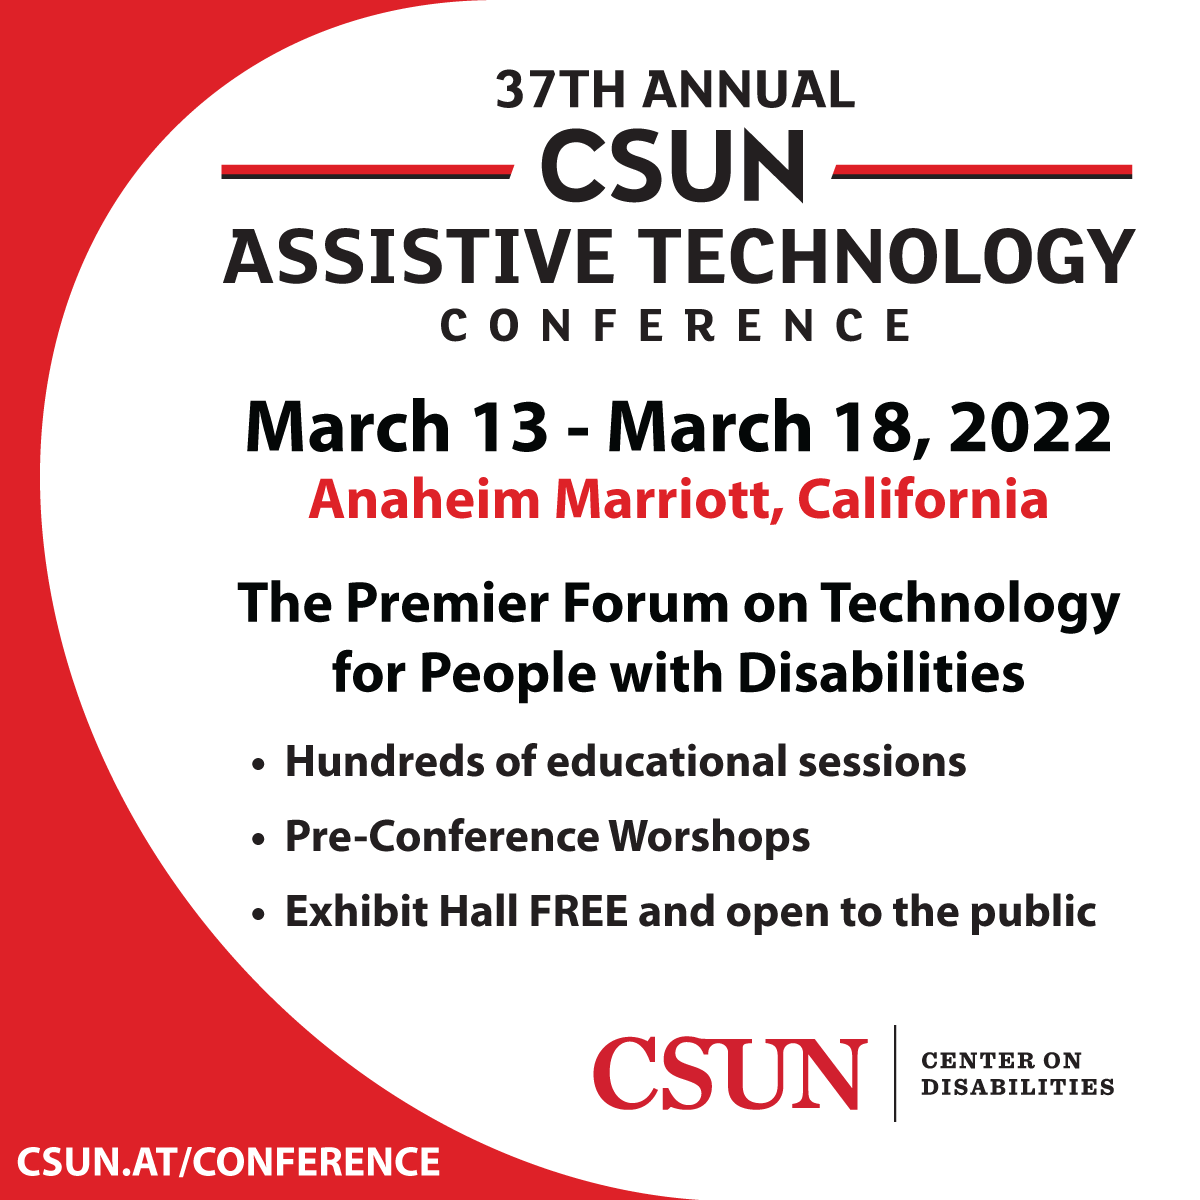 CSUN Center on Disabilities 2022 Conference flyer